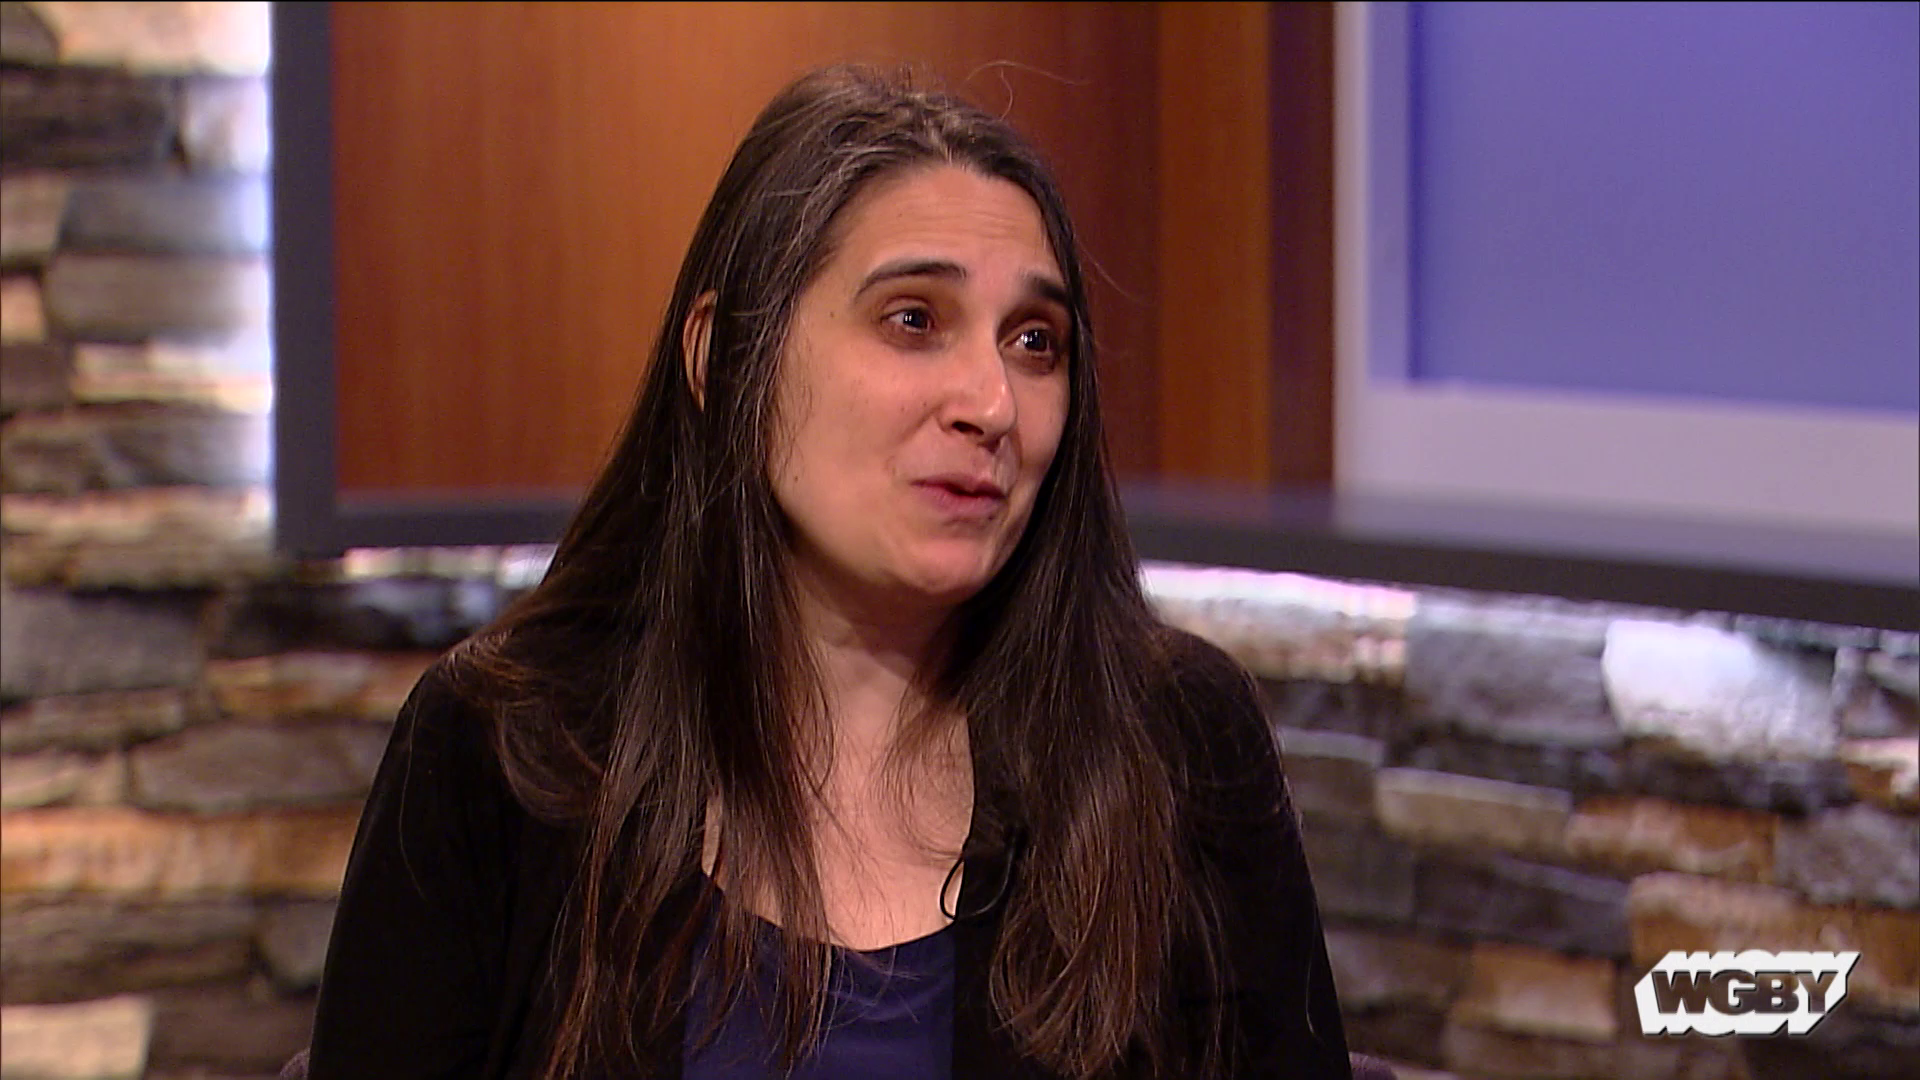 UMass School of Public Policy and Sociology Professor Joya Misra discusses her paper titled Motherhood Penalty: The Wage Gap Between Women with Kids and Those Without. The paper details new researching indicating that after having children, mothers in the workforce are penalized with lower salaries.